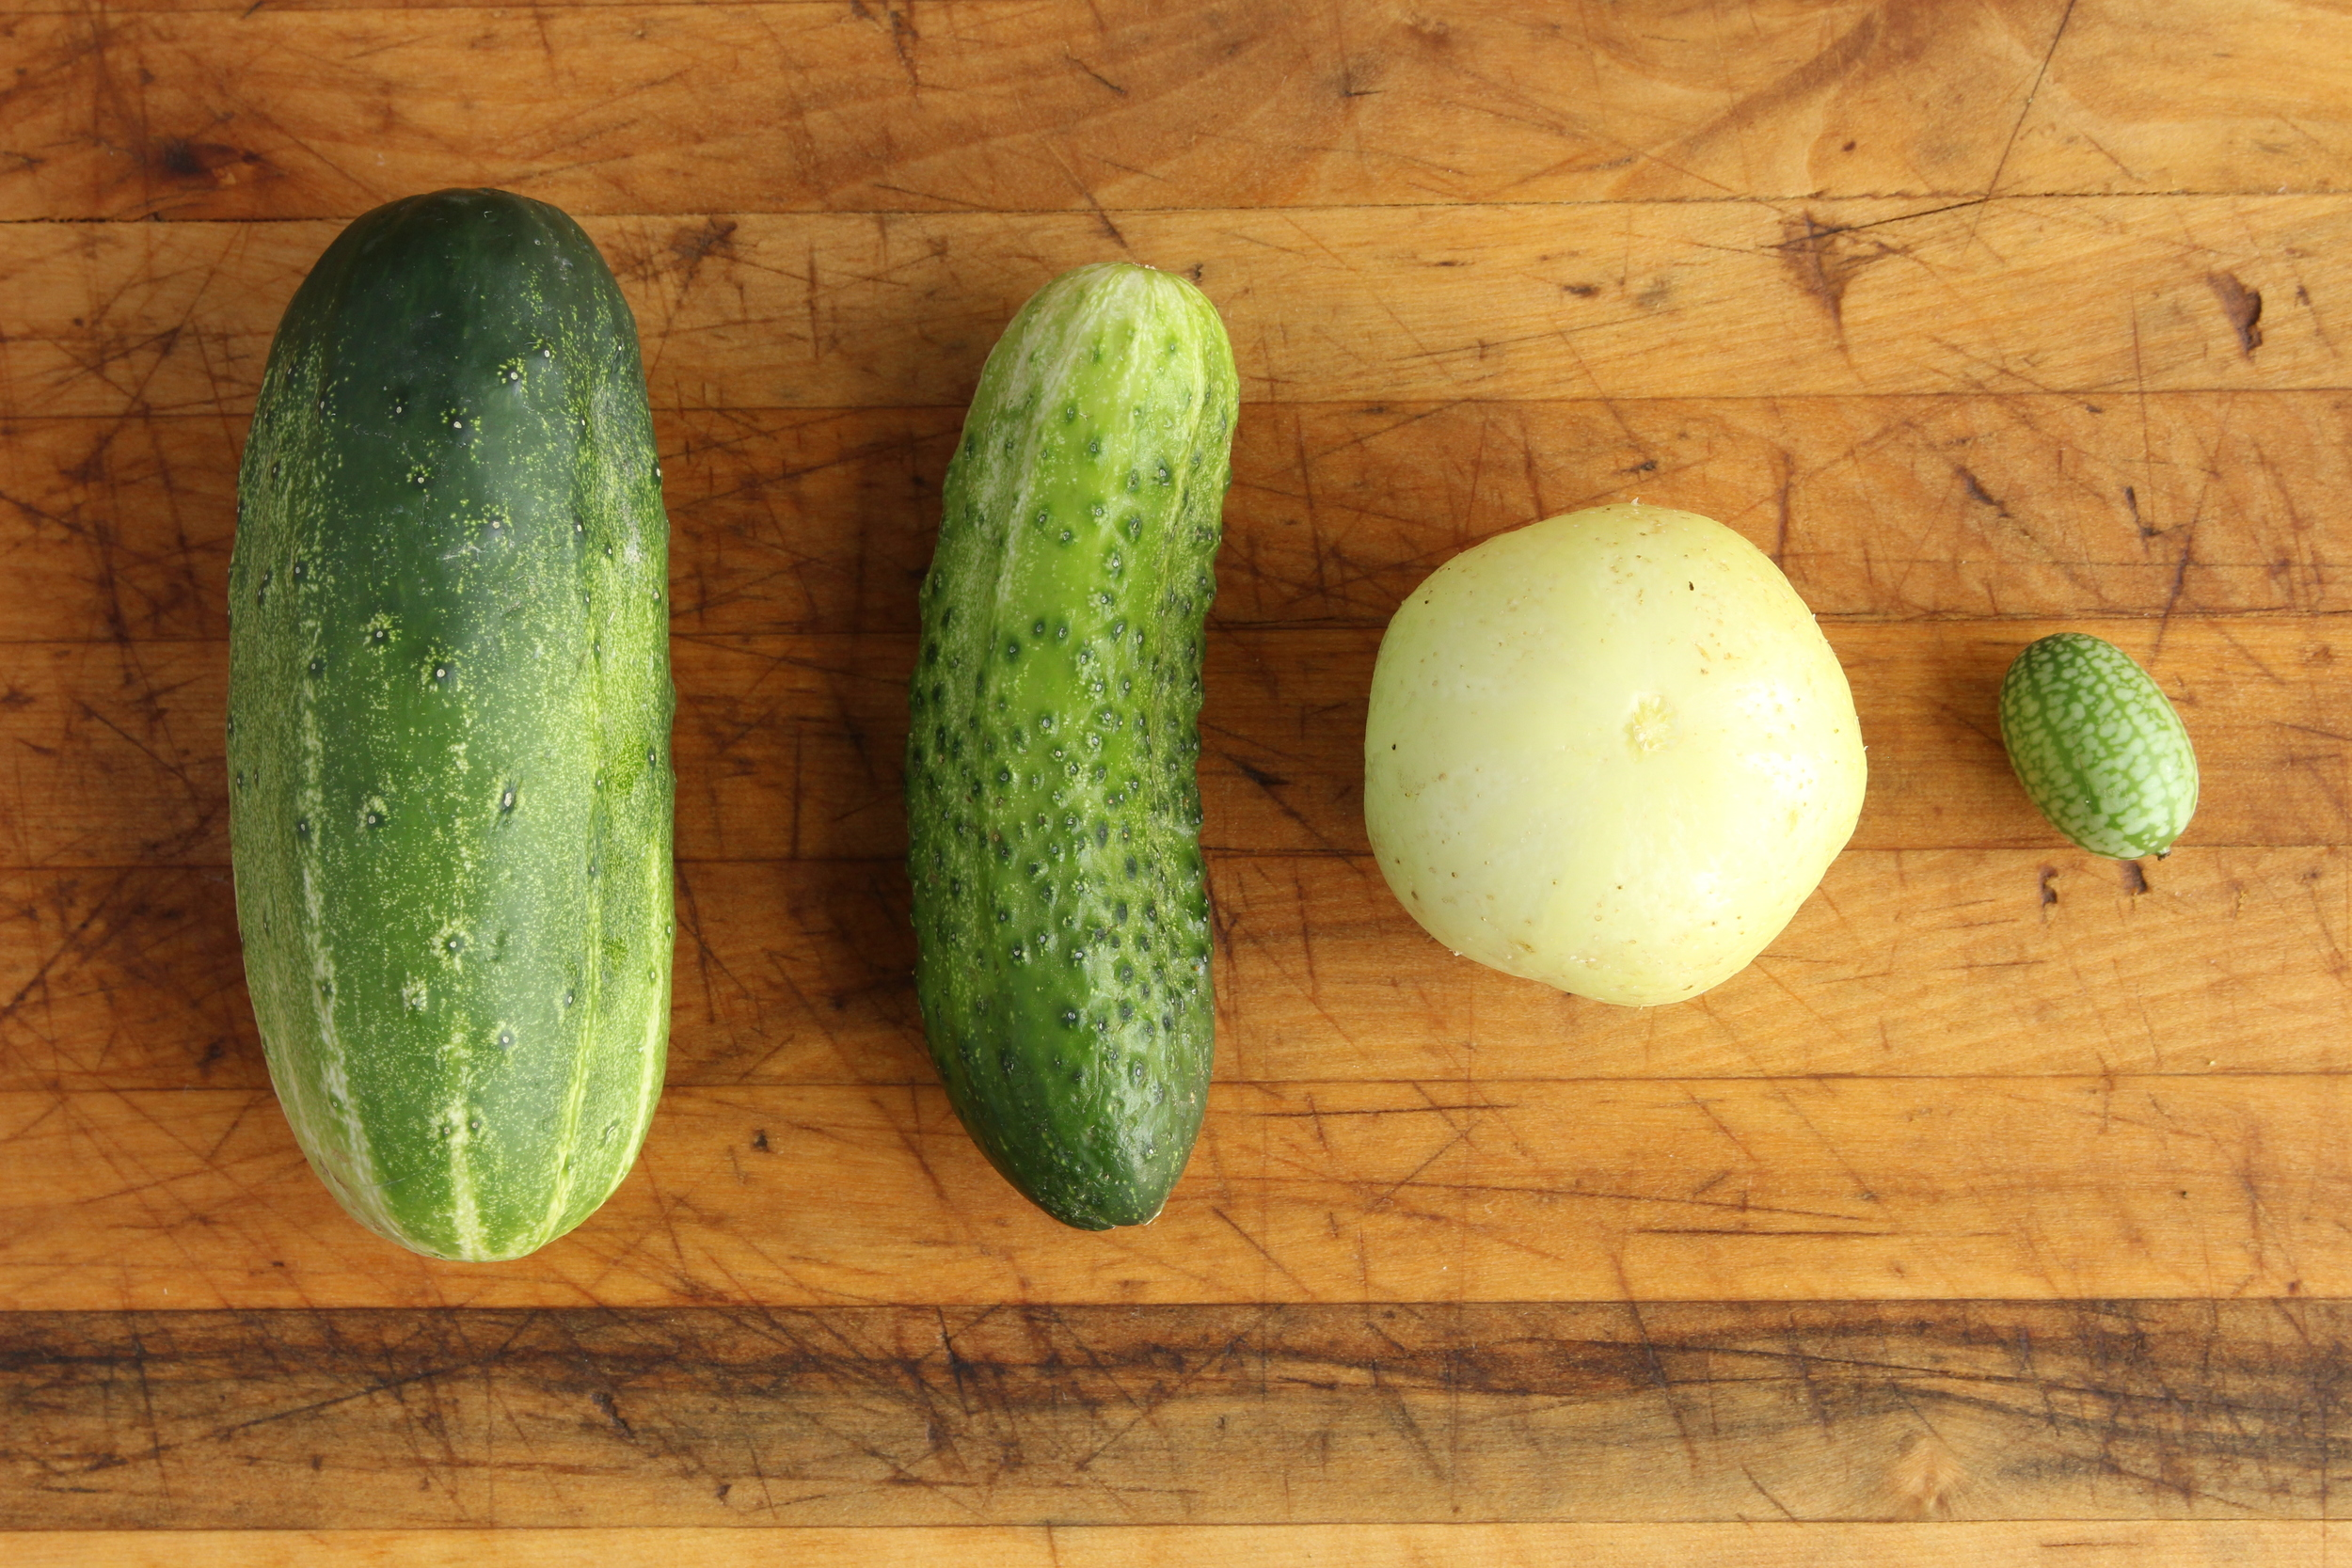 Left: Pickling cucumber, english cucumber, lemon cucumber, and Mexican sour gherkin. Right: cucumber dice.